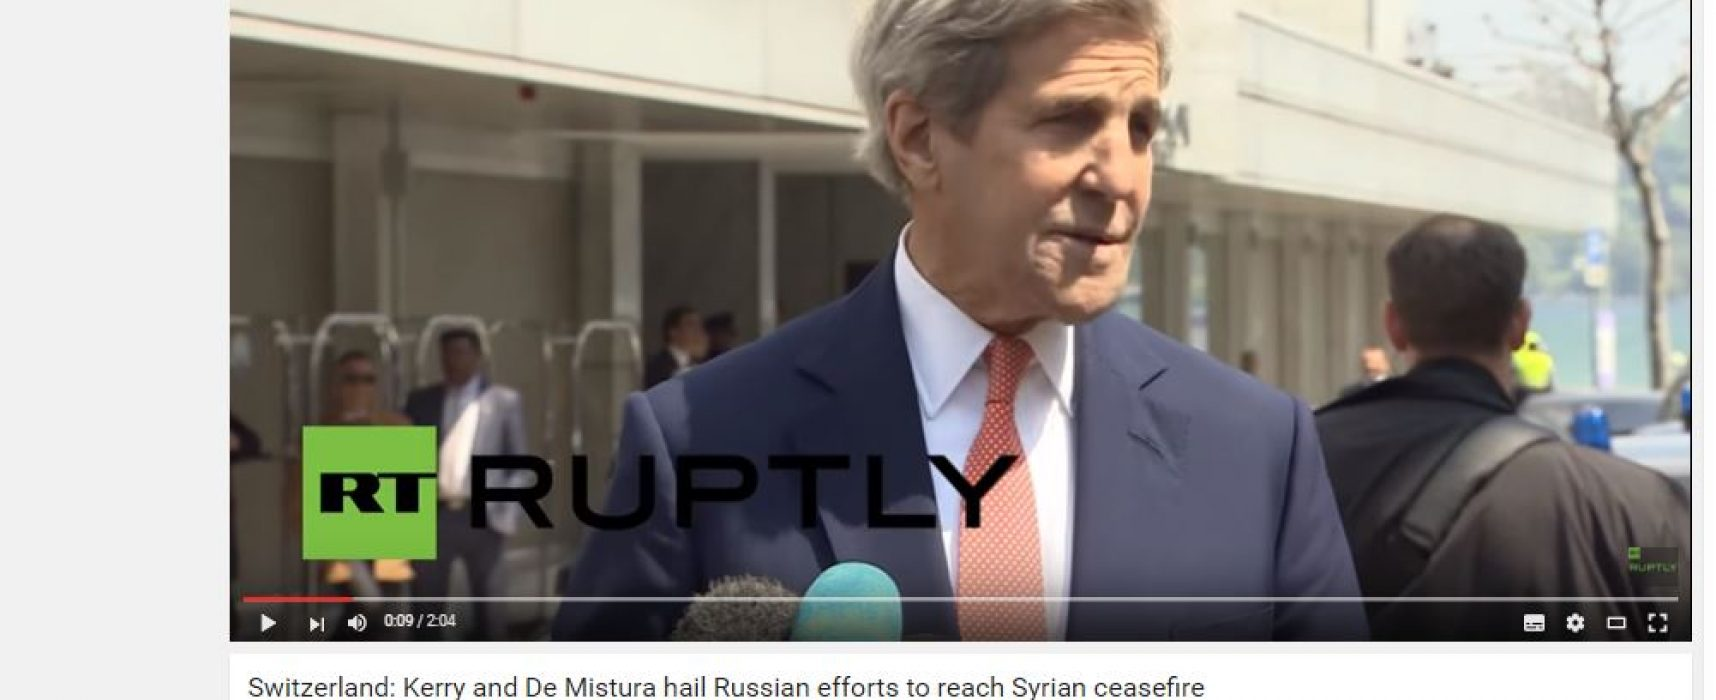 Fake: Kerry Praises Russian Efforts to Reach Ceasefire in Syria